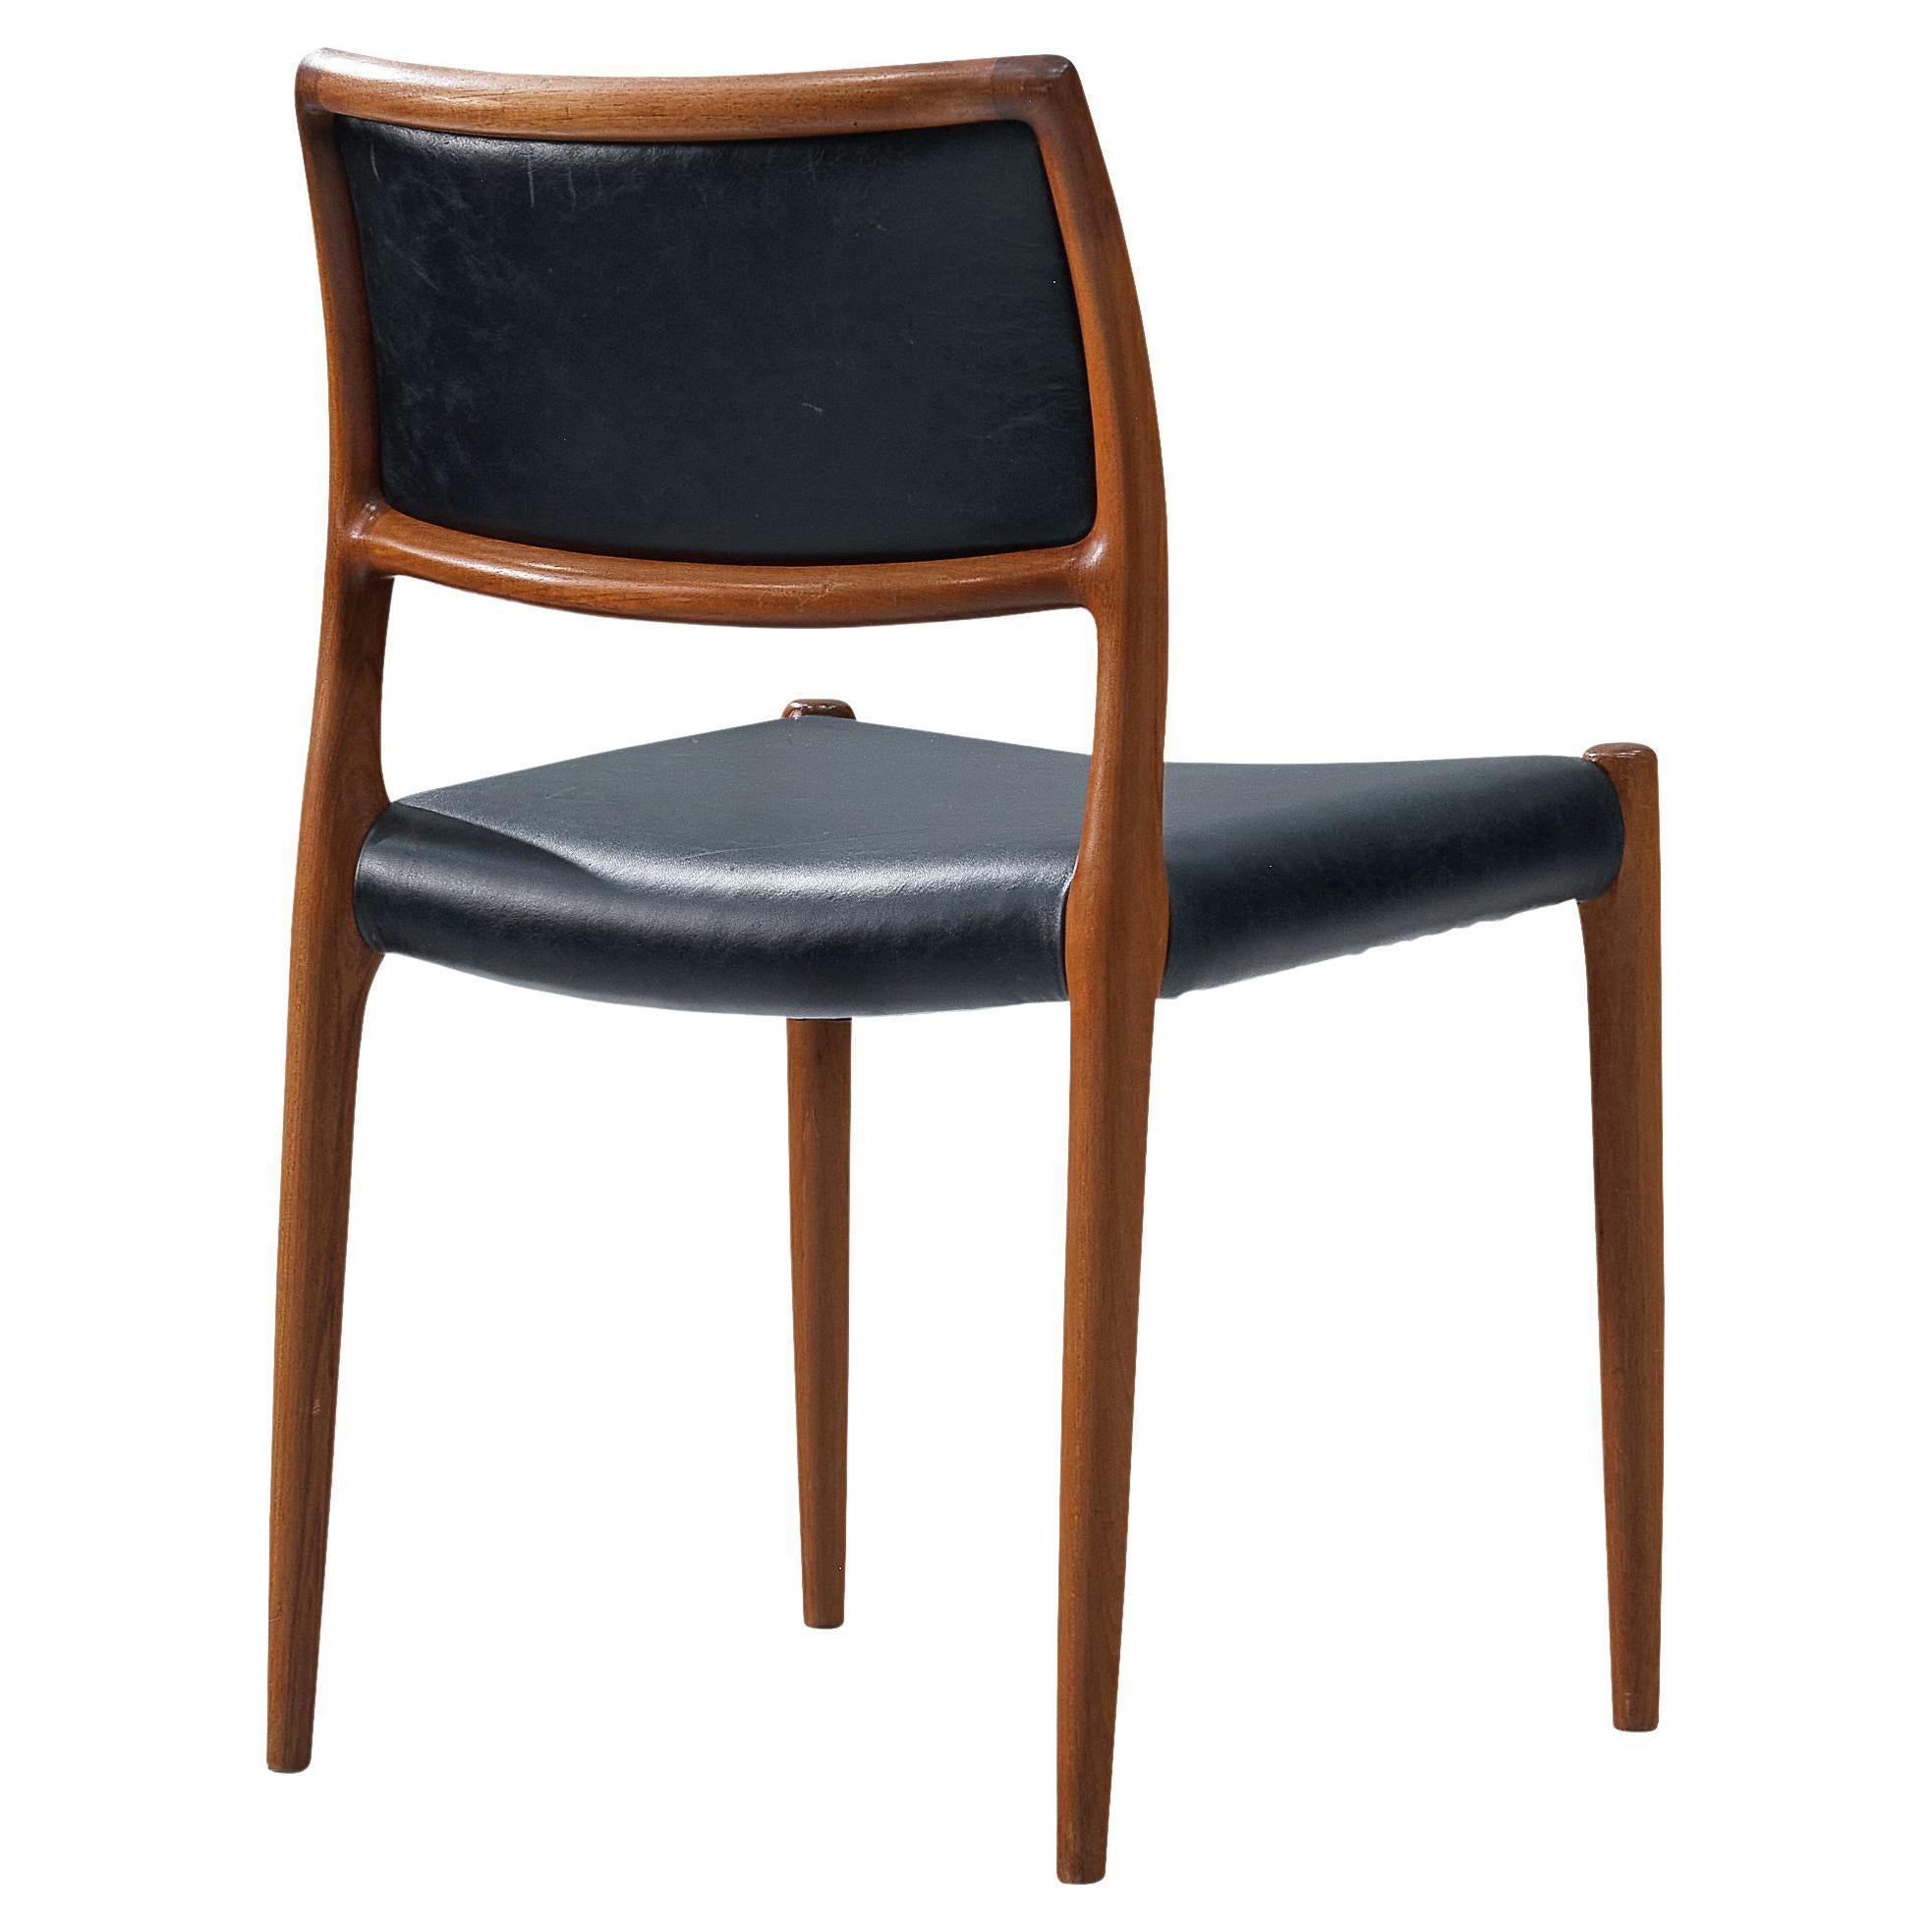 Niels Otto Møller Dining Chair Model '80' in Teak and Black Leather